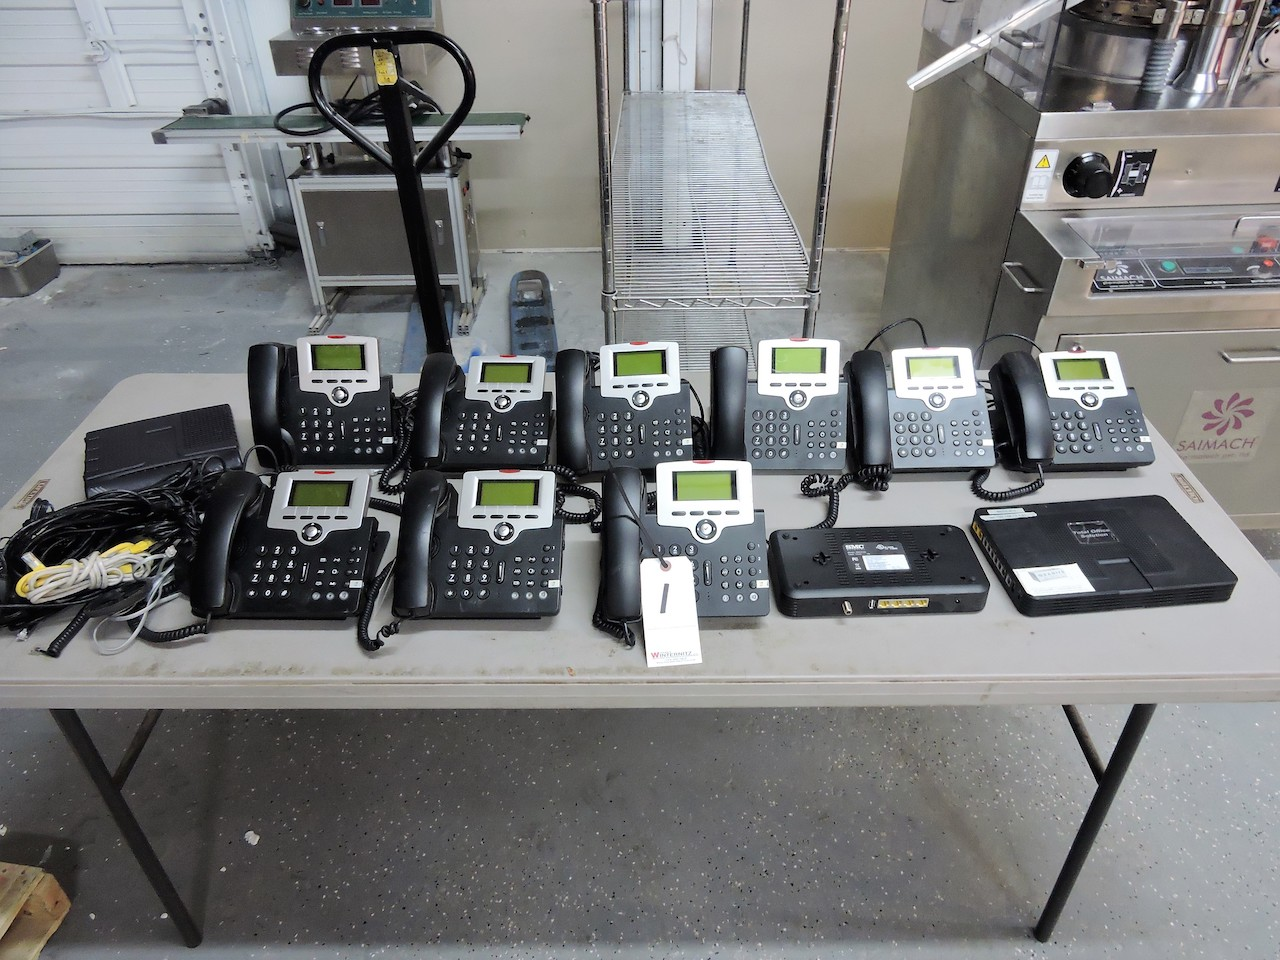 Lot 1 - SMC NETWORKS TELEPHONE SYSTEM- MODEL TOS 3000 COMPLETE WITH 9 TELEPHONE UNITS